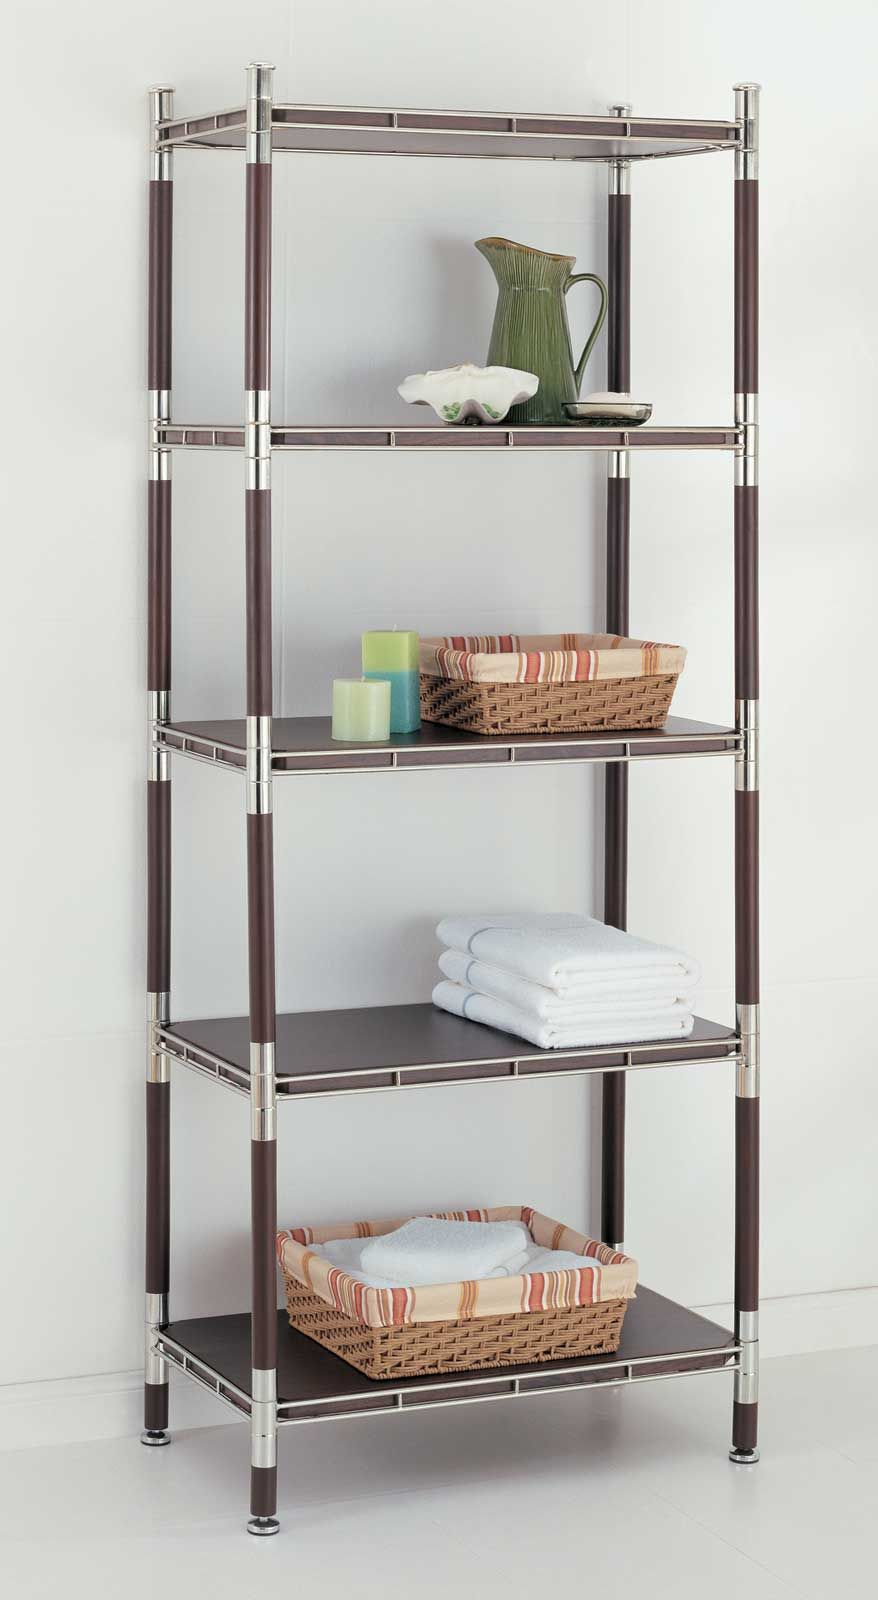 The 5 Tier Wood And Chrome Shelving Unit Is A Modern Shelf For The Bathroom Or Office Find Contemporary She Shelves Wood Shelving Units Bathroom Shelving Unit